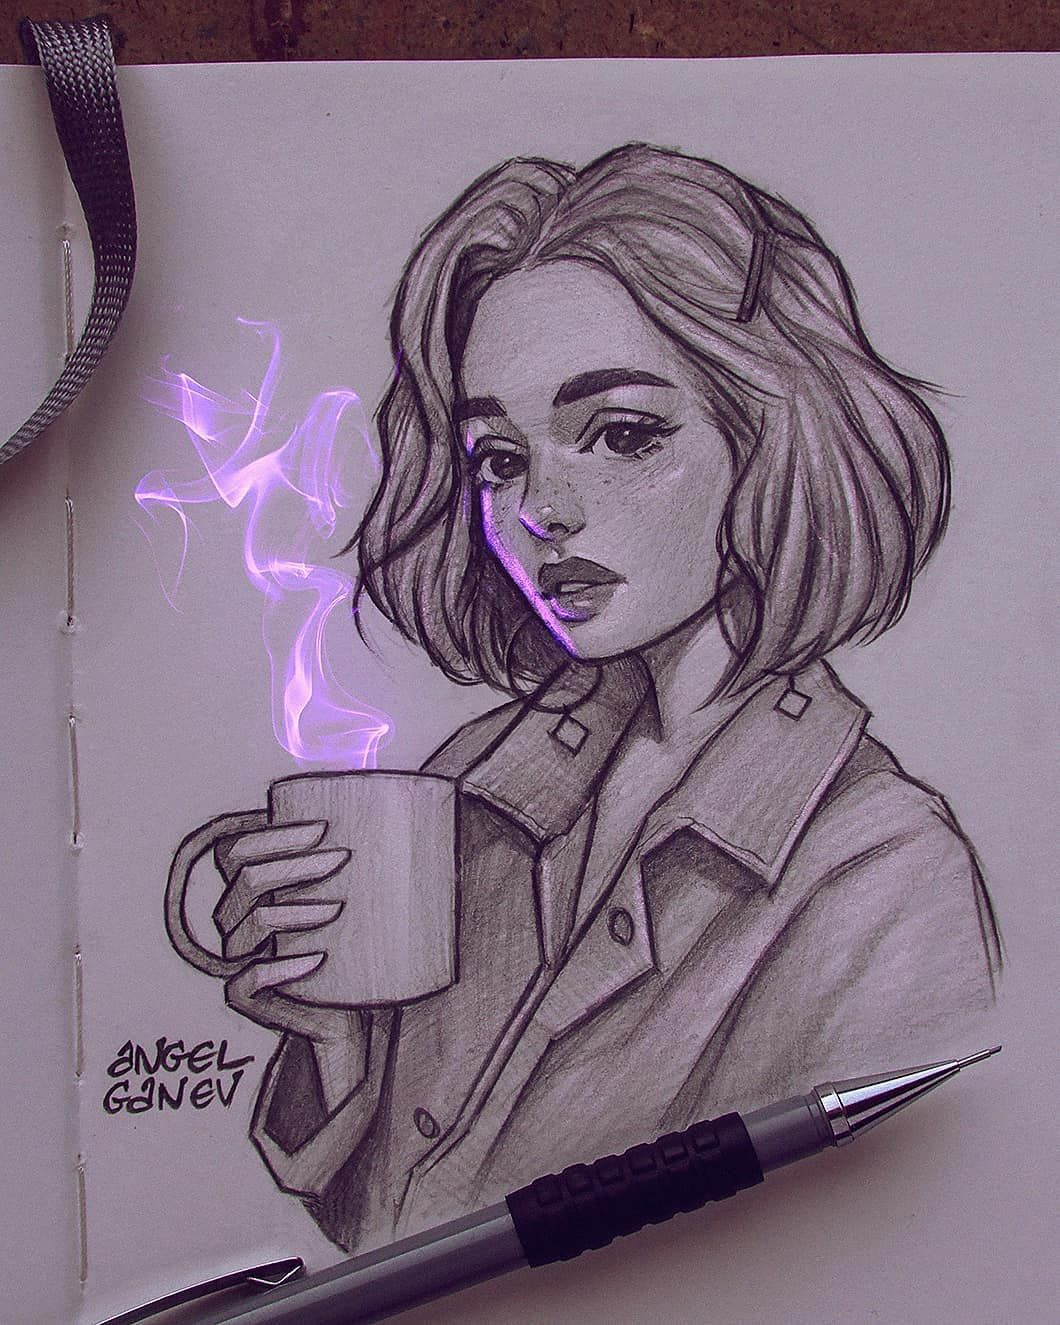 Angel Ganev On Instagram Bright Purple Thing Sketch Trying To Experiment More With Add In 2020 Art Sketches Art Drawings Sketches Art Drawings Sketches Simple